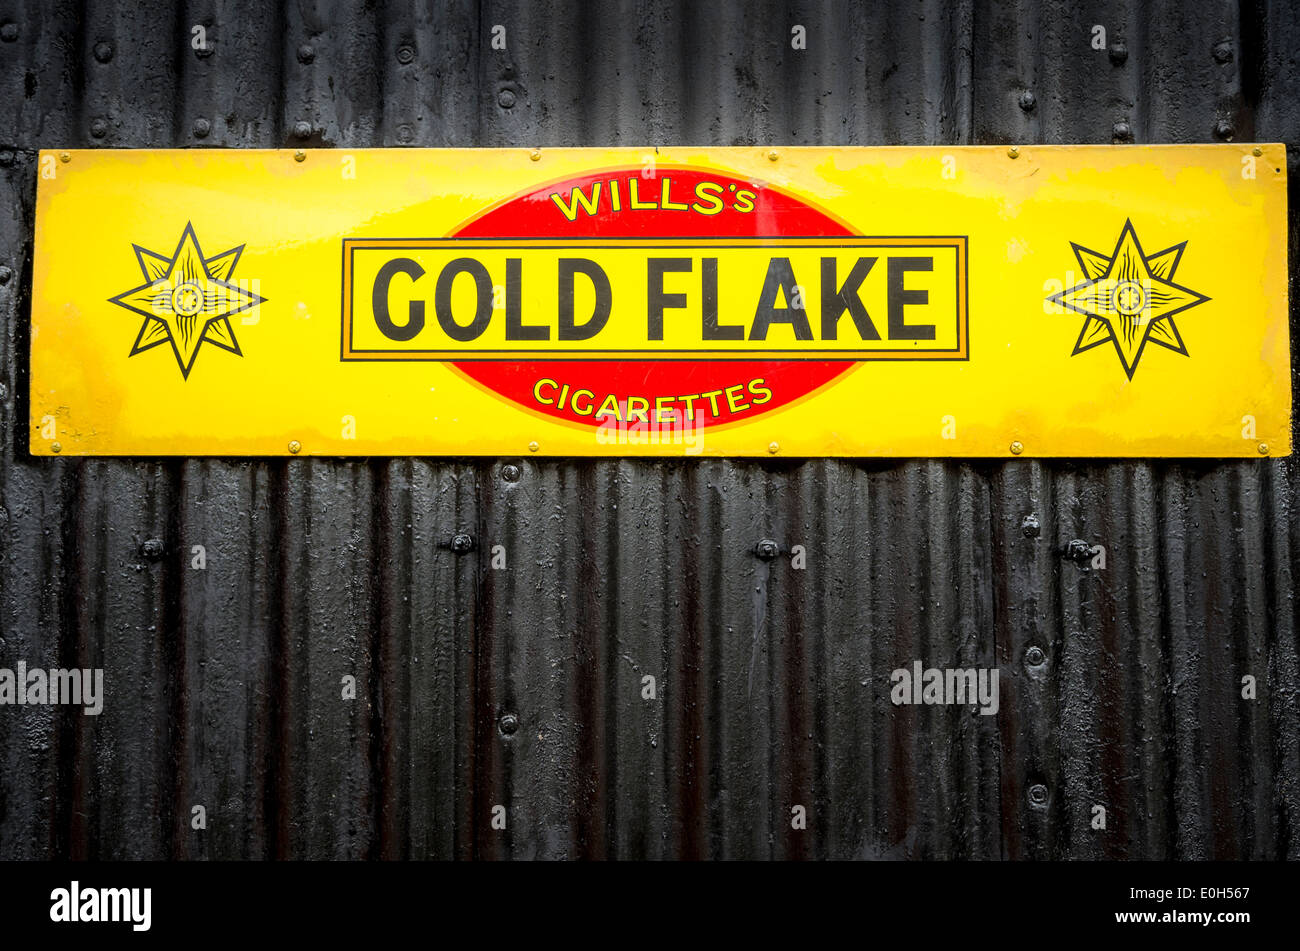 Old metal advertisement for GOLD FLAKE tobacco and cigarettes - Stock Image